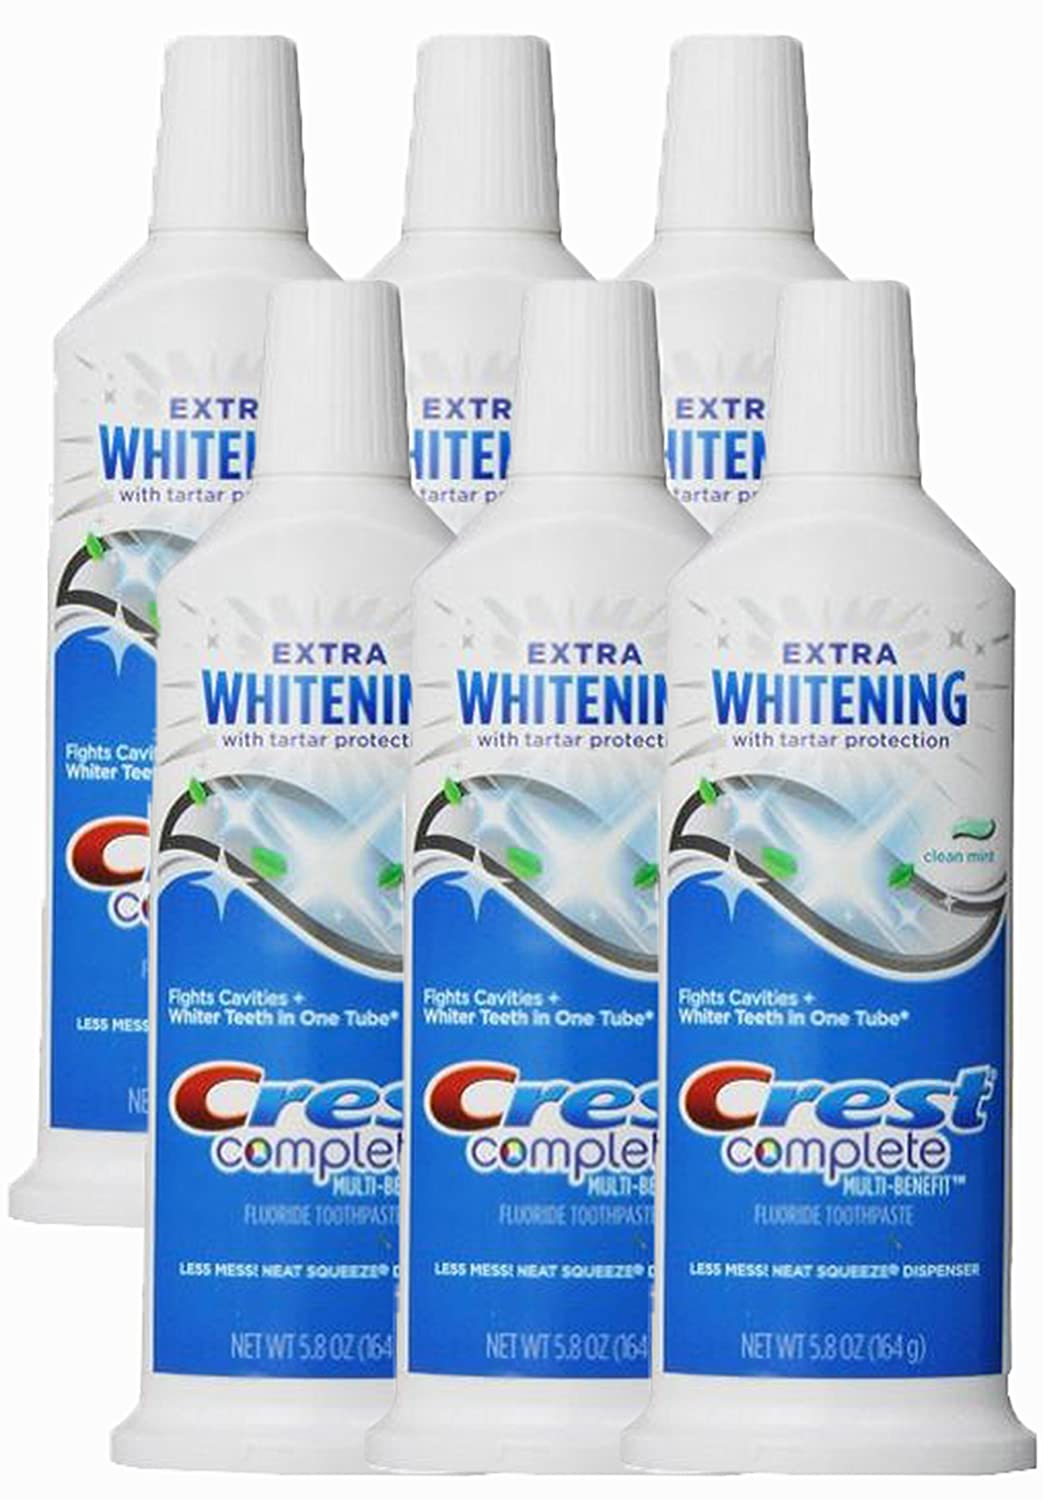 Crest Complete Multi-benefit Extra Whitening Tartar Protection Clean Mint Flavor Toothpaste, 5.8 Oz (Pack of 6) weifang 495 k4100 r4105 r6105 diesel engine and diesel generator parts 12v 24v stop solenoid for sale